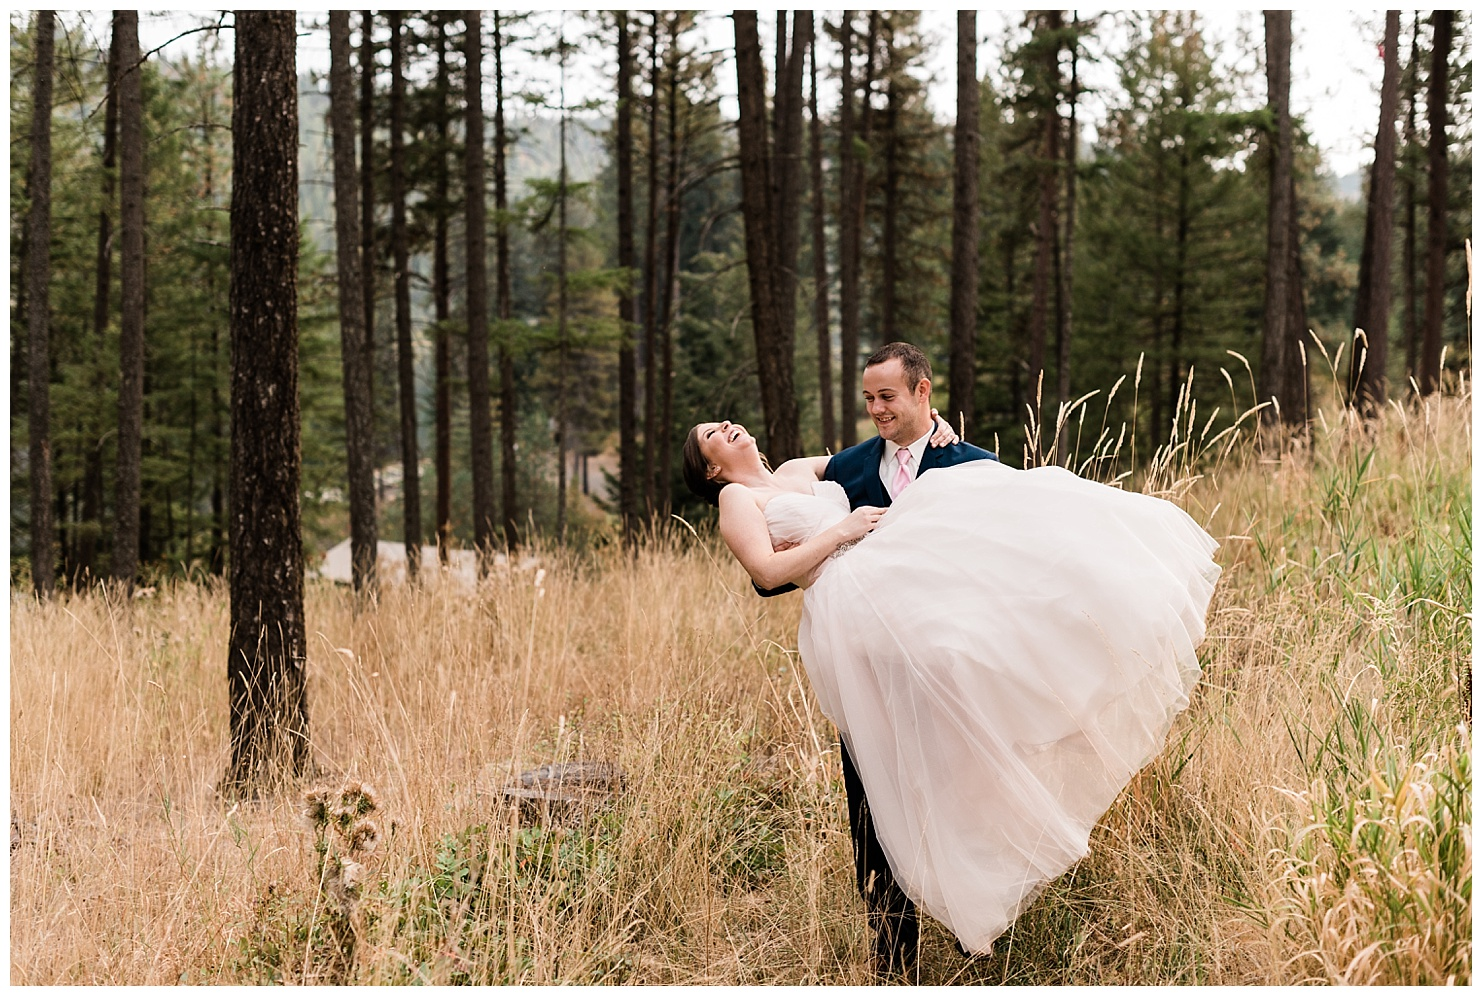 Camp Four Echoes Wedding by Forthright Photo, Coeur d'Alene Wedding Photographers